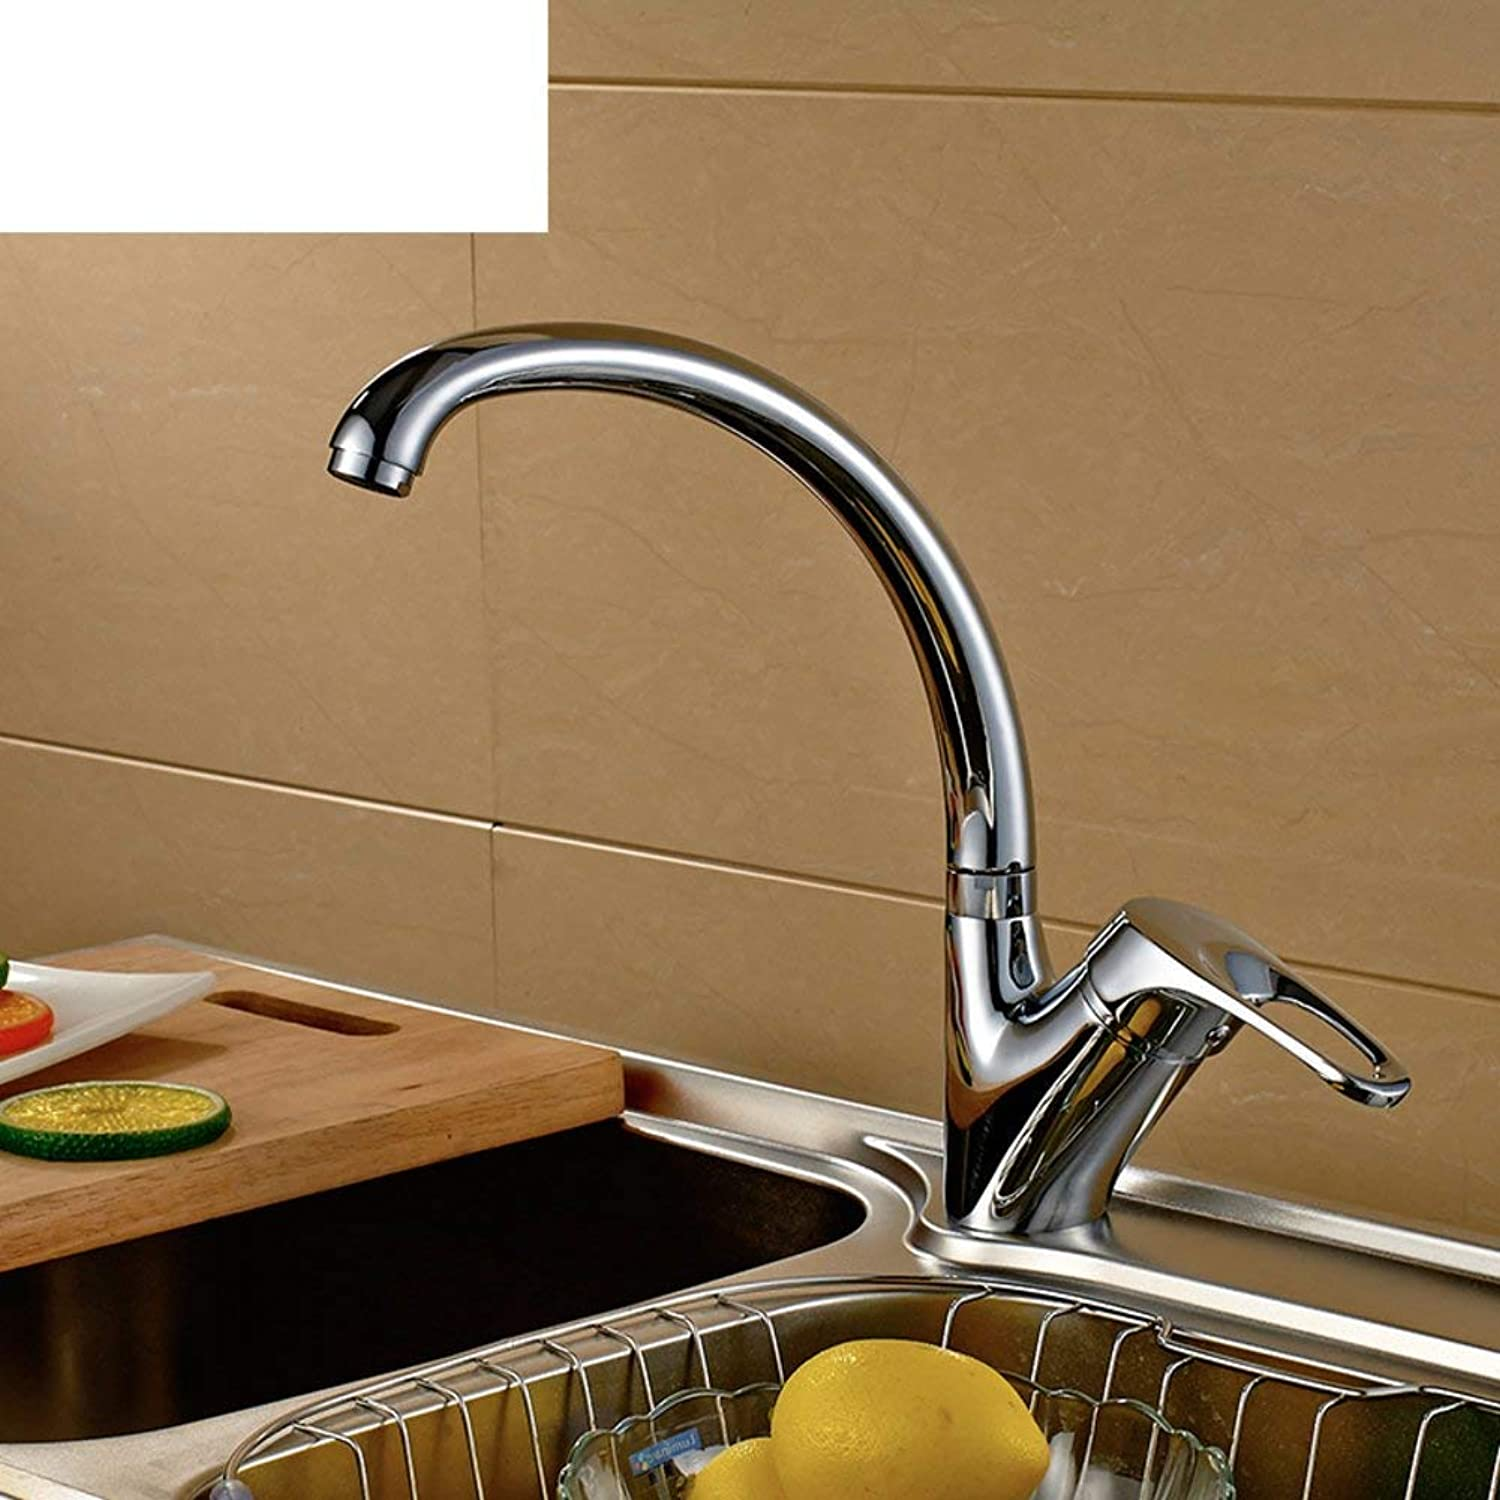 Oudan Kitchen faucet Caipen hot and cold sink faucet Washbasin faucet redation (color   -, Size   -)